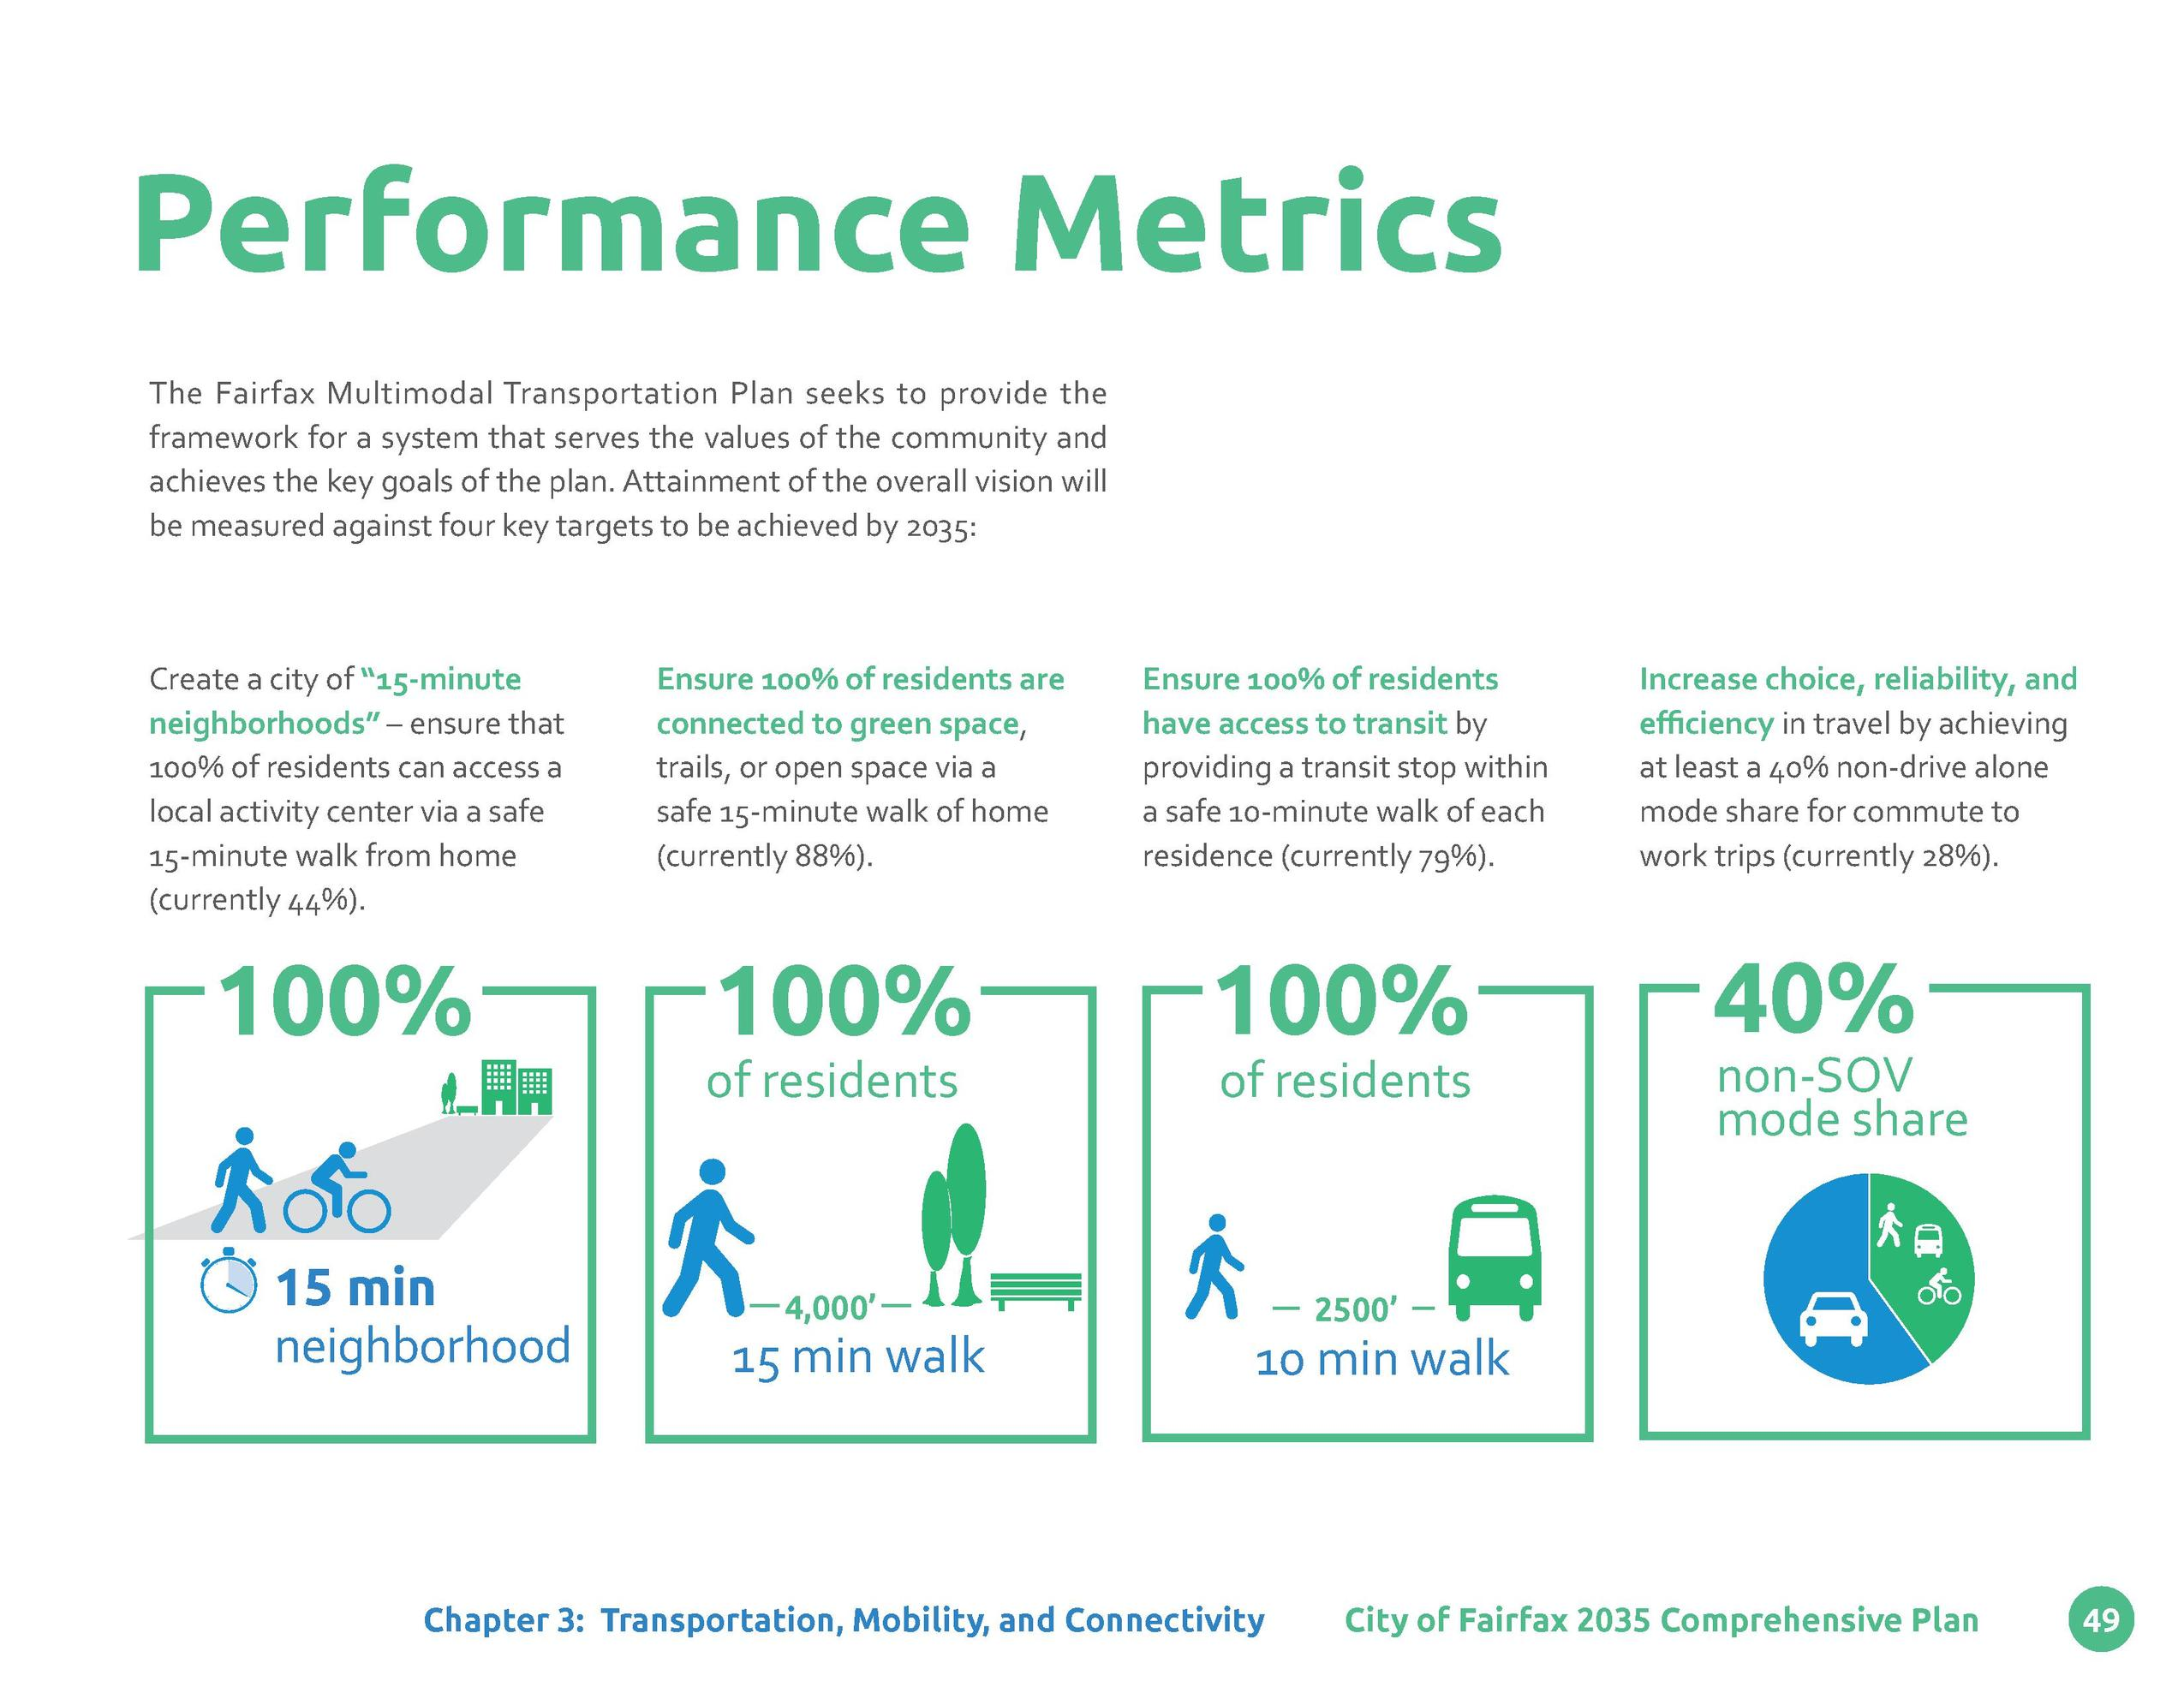 Performance Metrics The Fairfax Multimodal Transportation Plan seeks to provide the framework for a system that serves the...